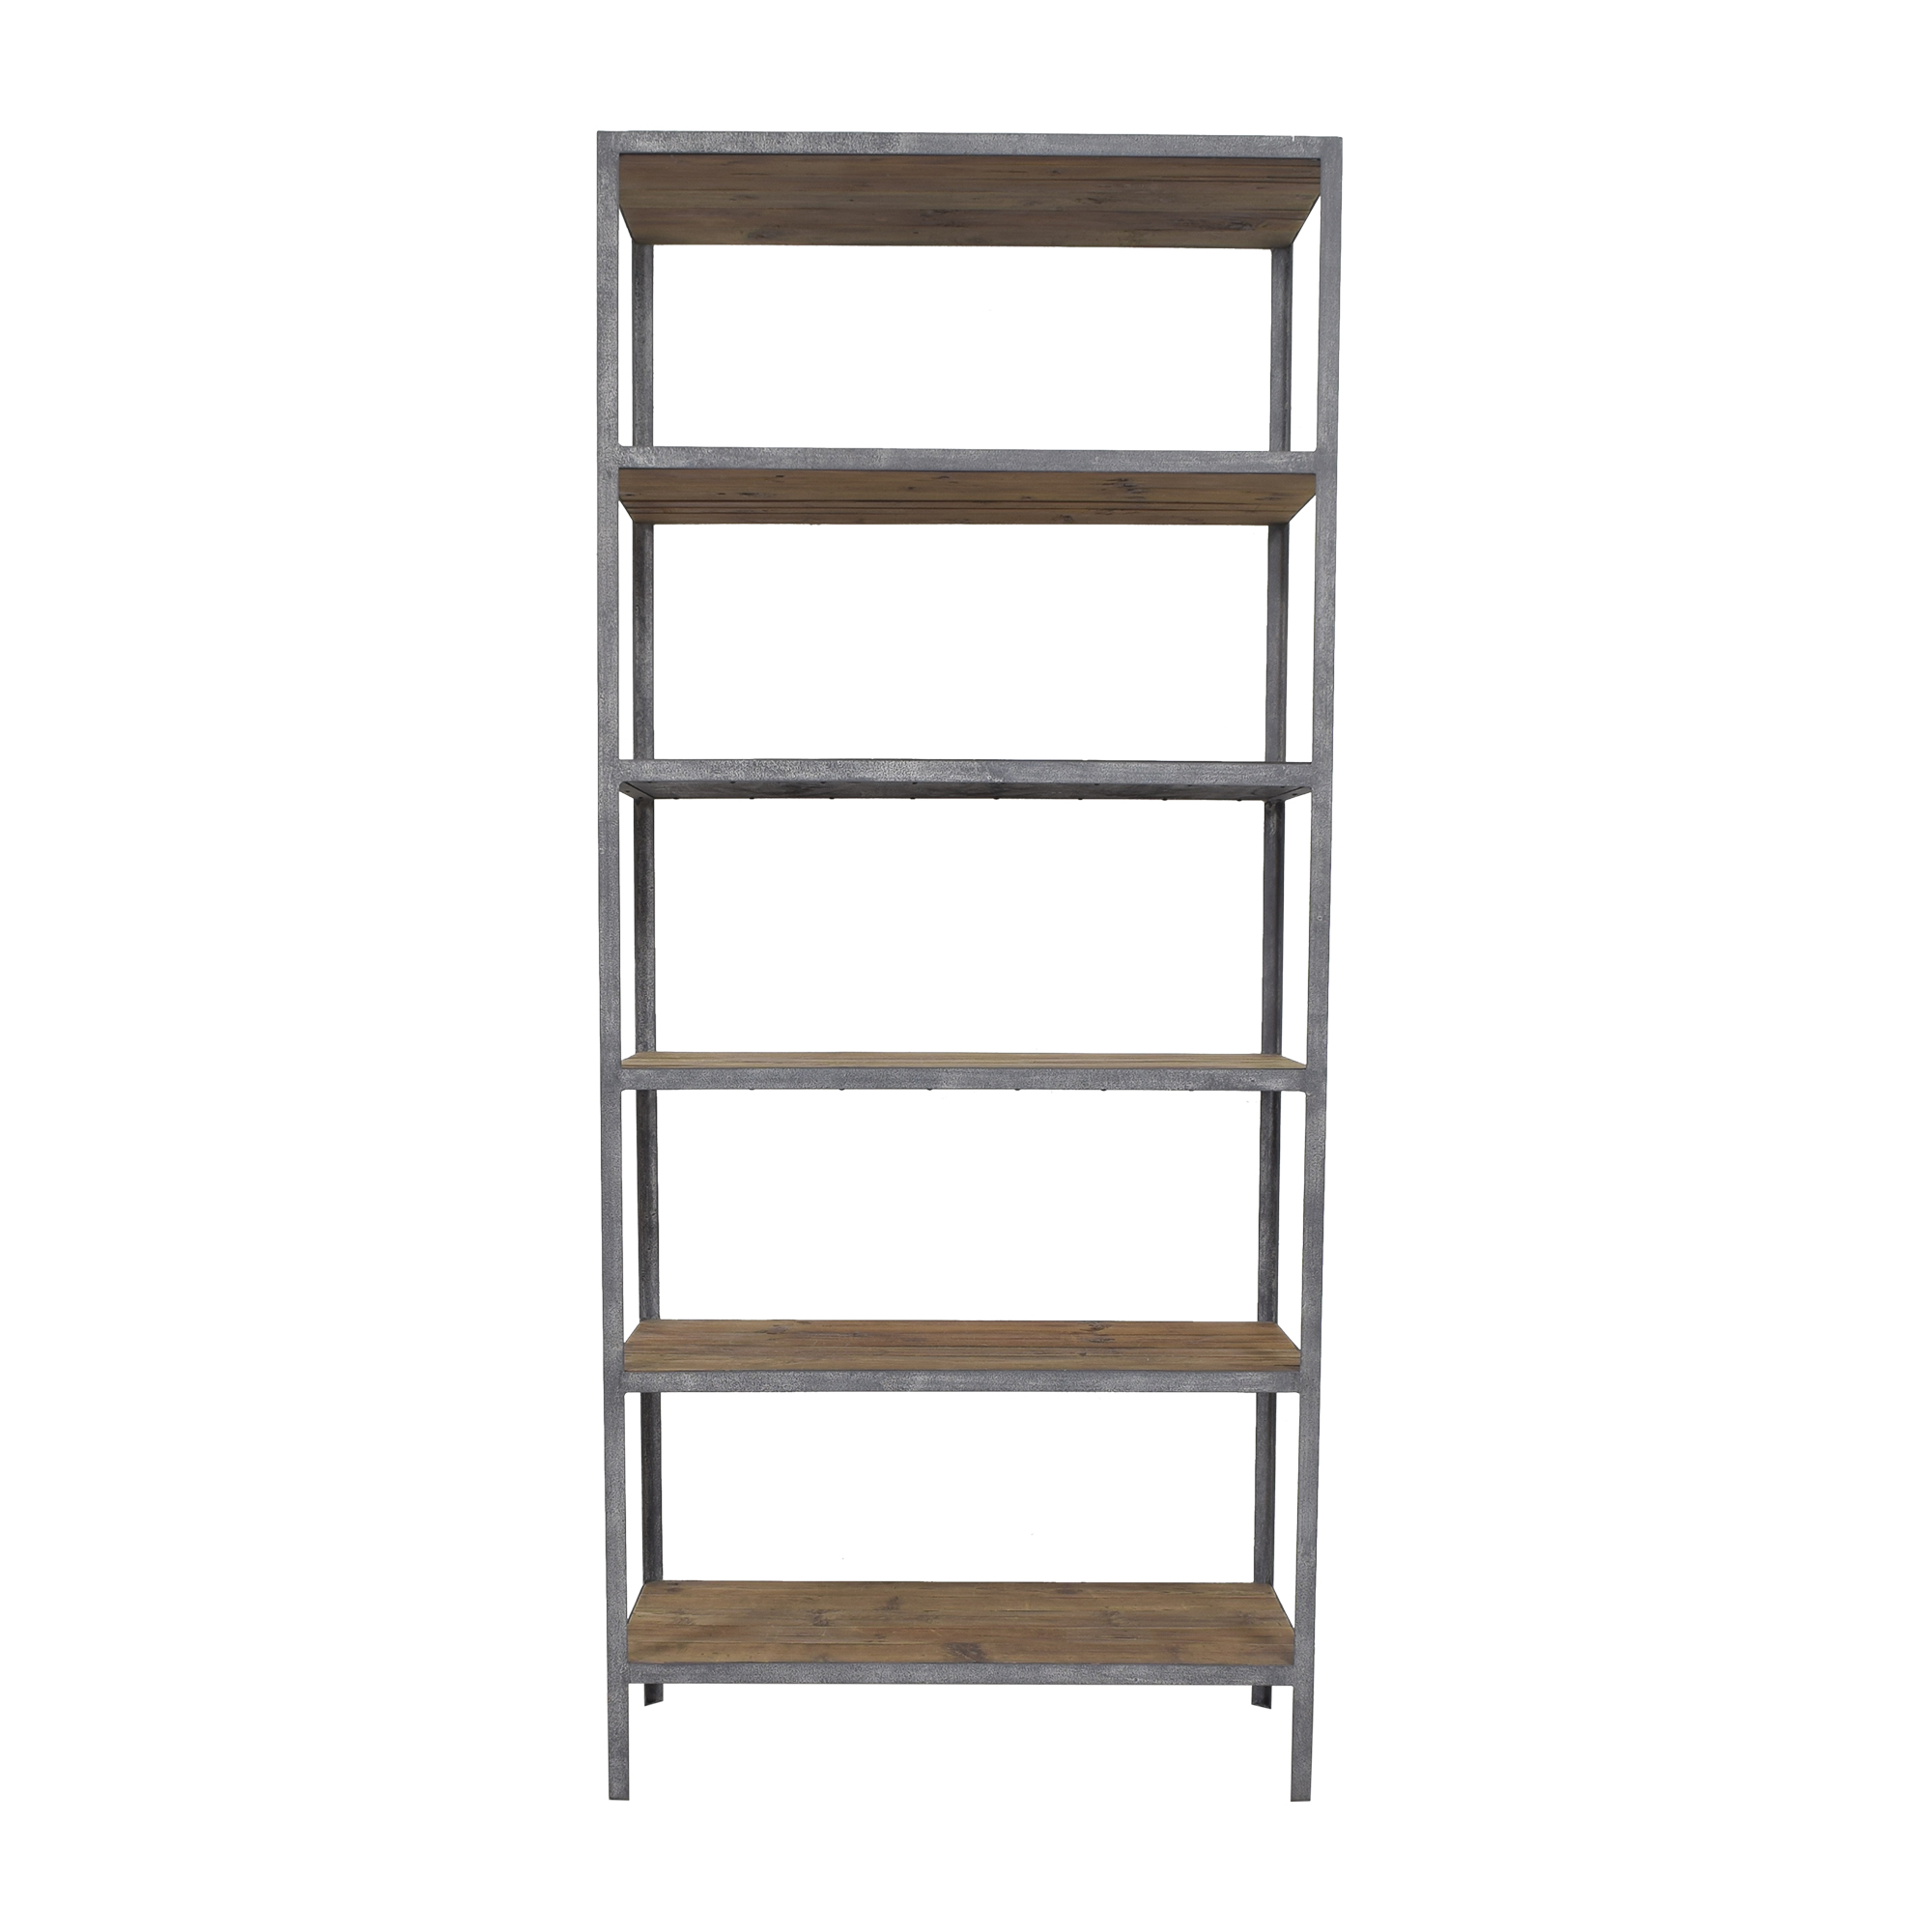 Restoration Hardware Restoration Hardware Vintage Industrial Single Shelving coupon